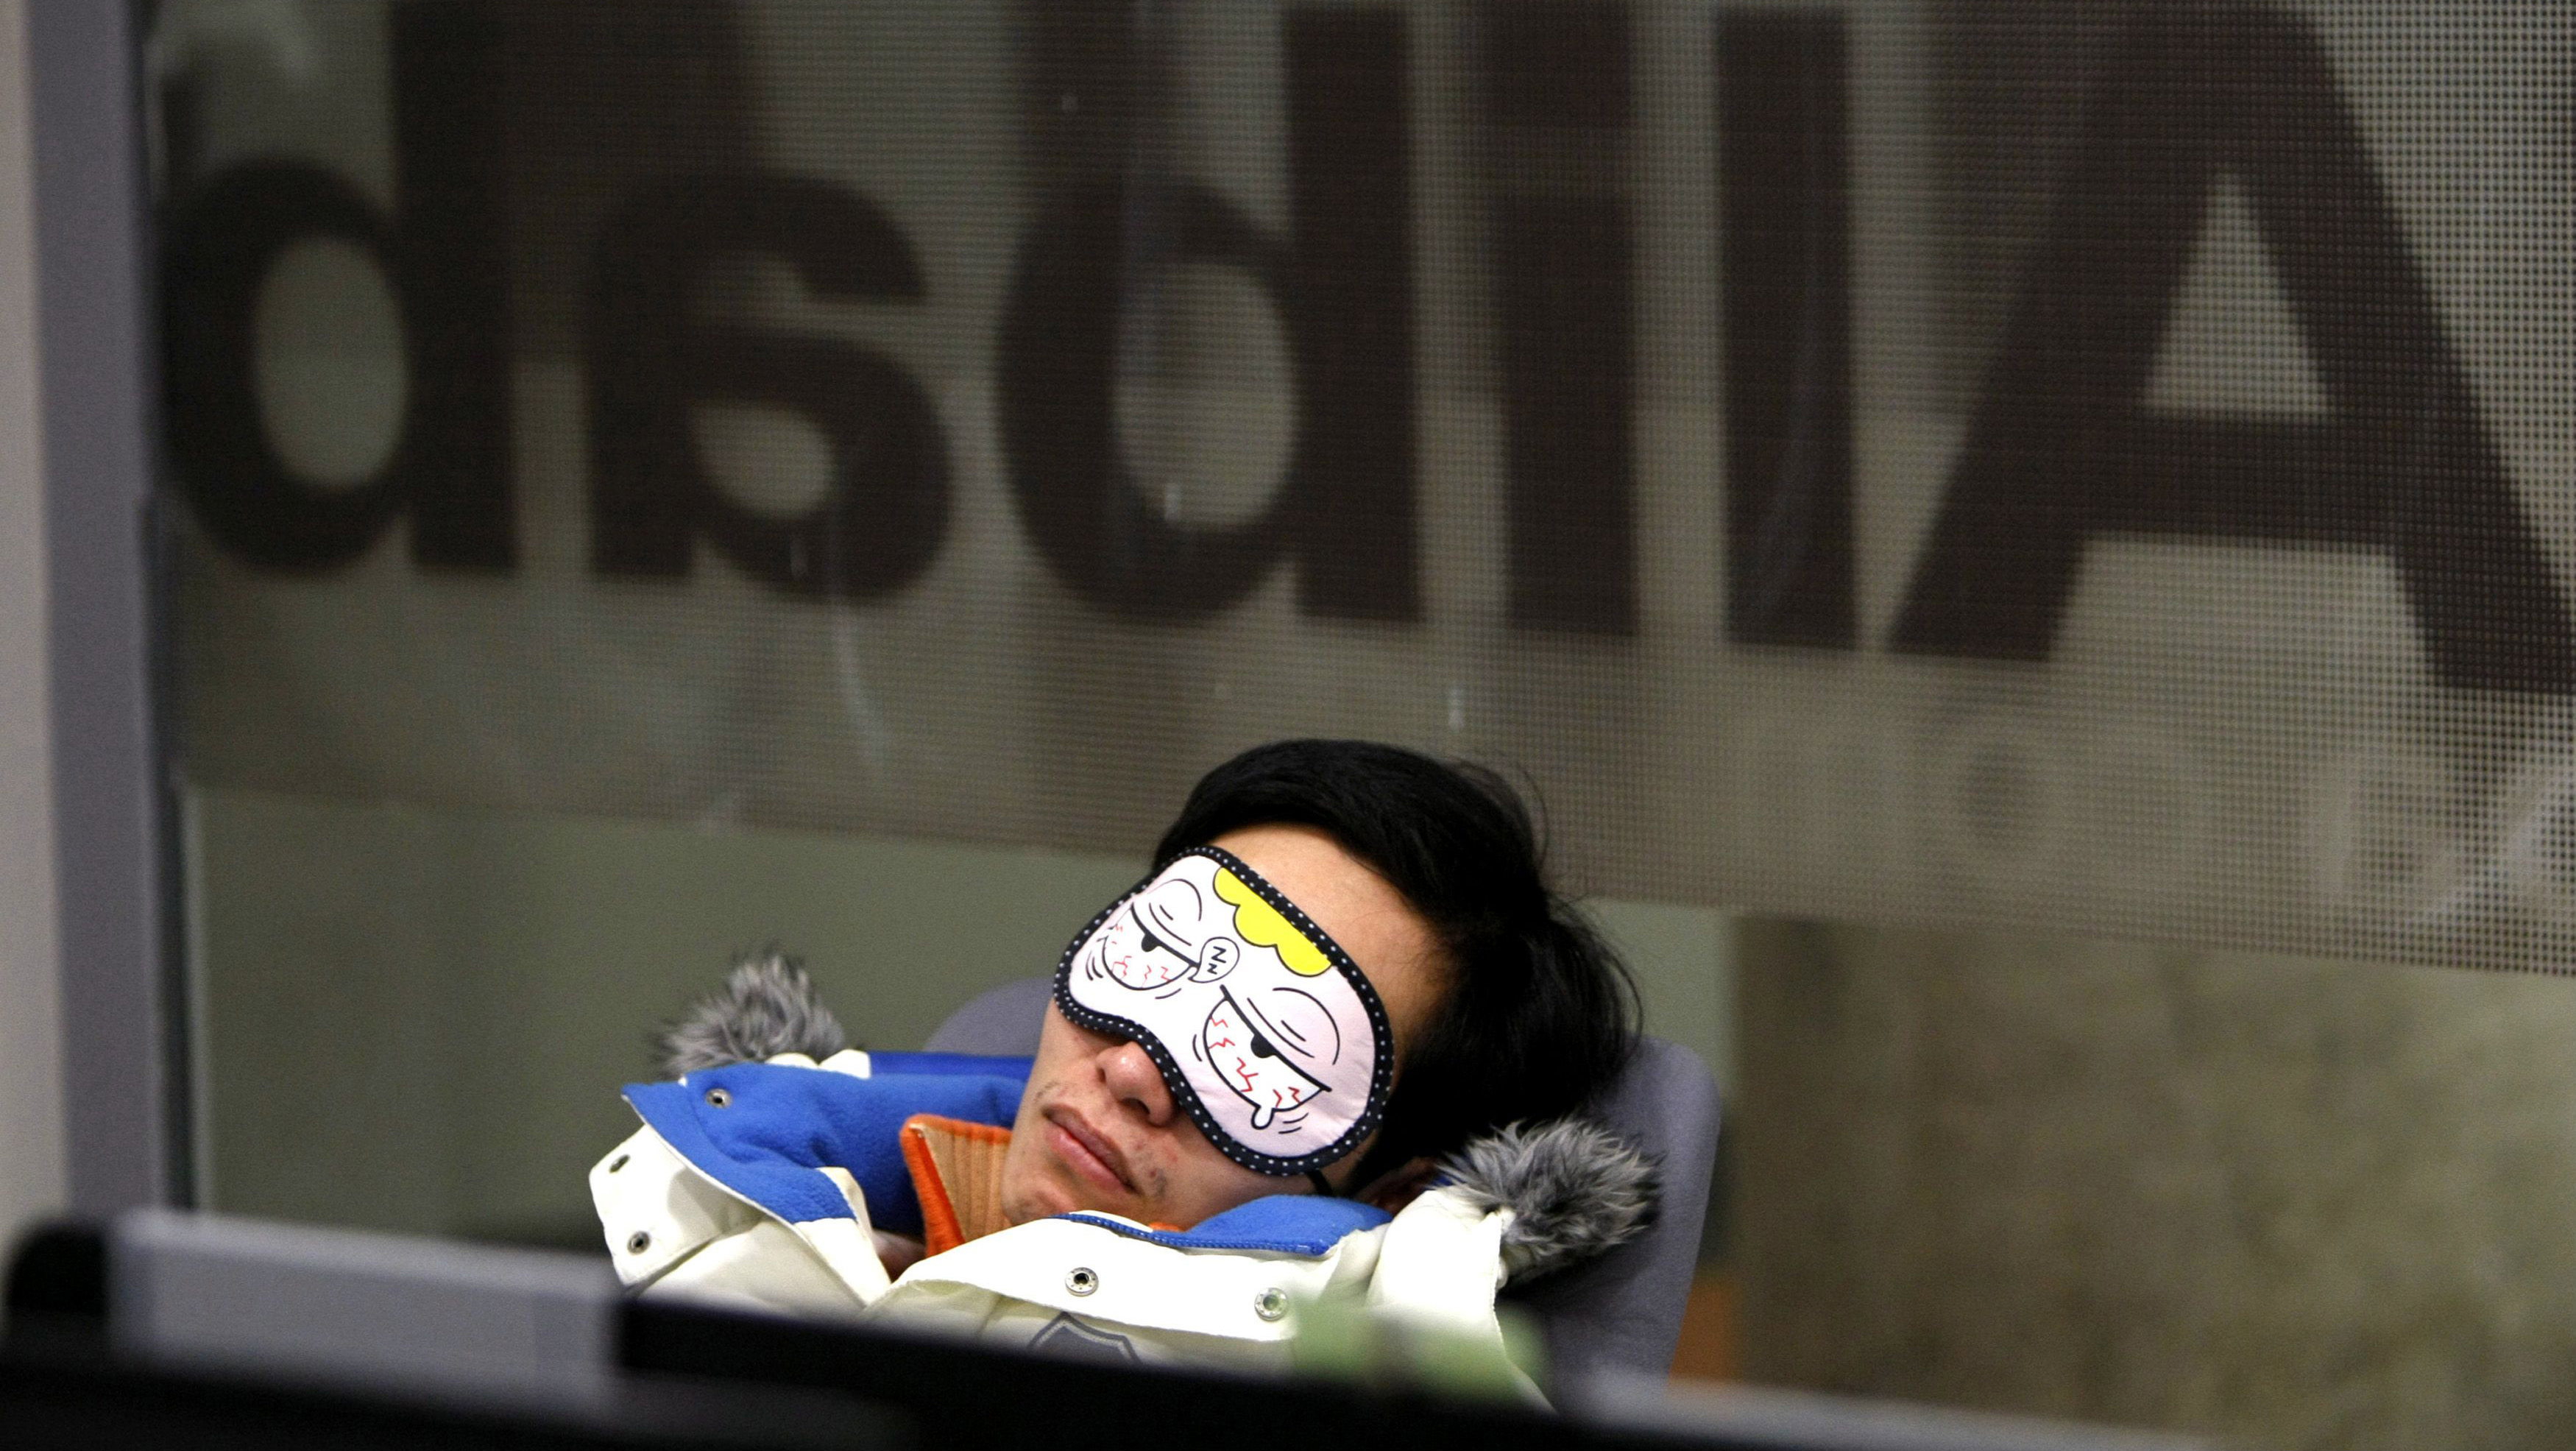 An employee takes a nap during a break inside the headquarters of Alibaba Group on the outskirts of Hangzhou, Zhejiang province, in this December 29, 2009 file photo. China's e-commerce market is expected to leapfrog that of the United States in 2013 to become the world's largest by total customer spending, management consultancy firm Bain & Company says, and could account for half of all Chinese retail spending within a decade.REUTERS/Stringer (CHINA - Tags: BUSINESS SCIENCE TECHNOLOGY) CHINA OUT. NO COMMERCIAL OR EDITORIAL SALES IN CHINA